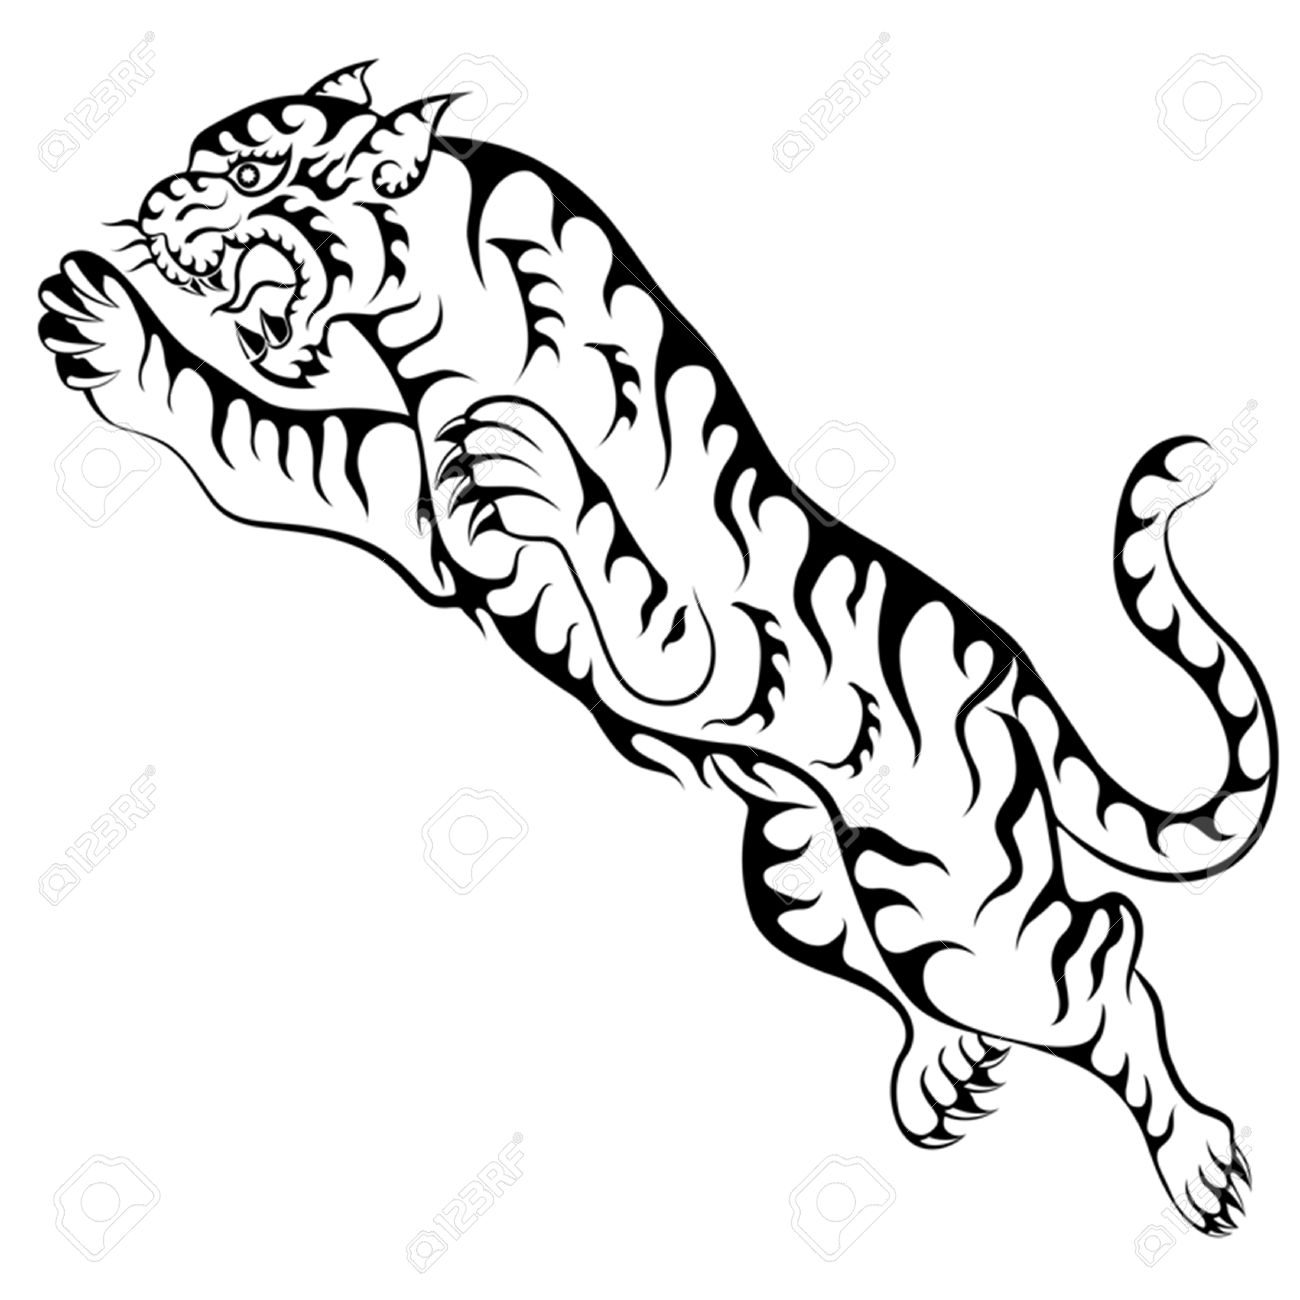 1300x1300 Tiger Tattoo Stock Photos. Royalty Free Business Images